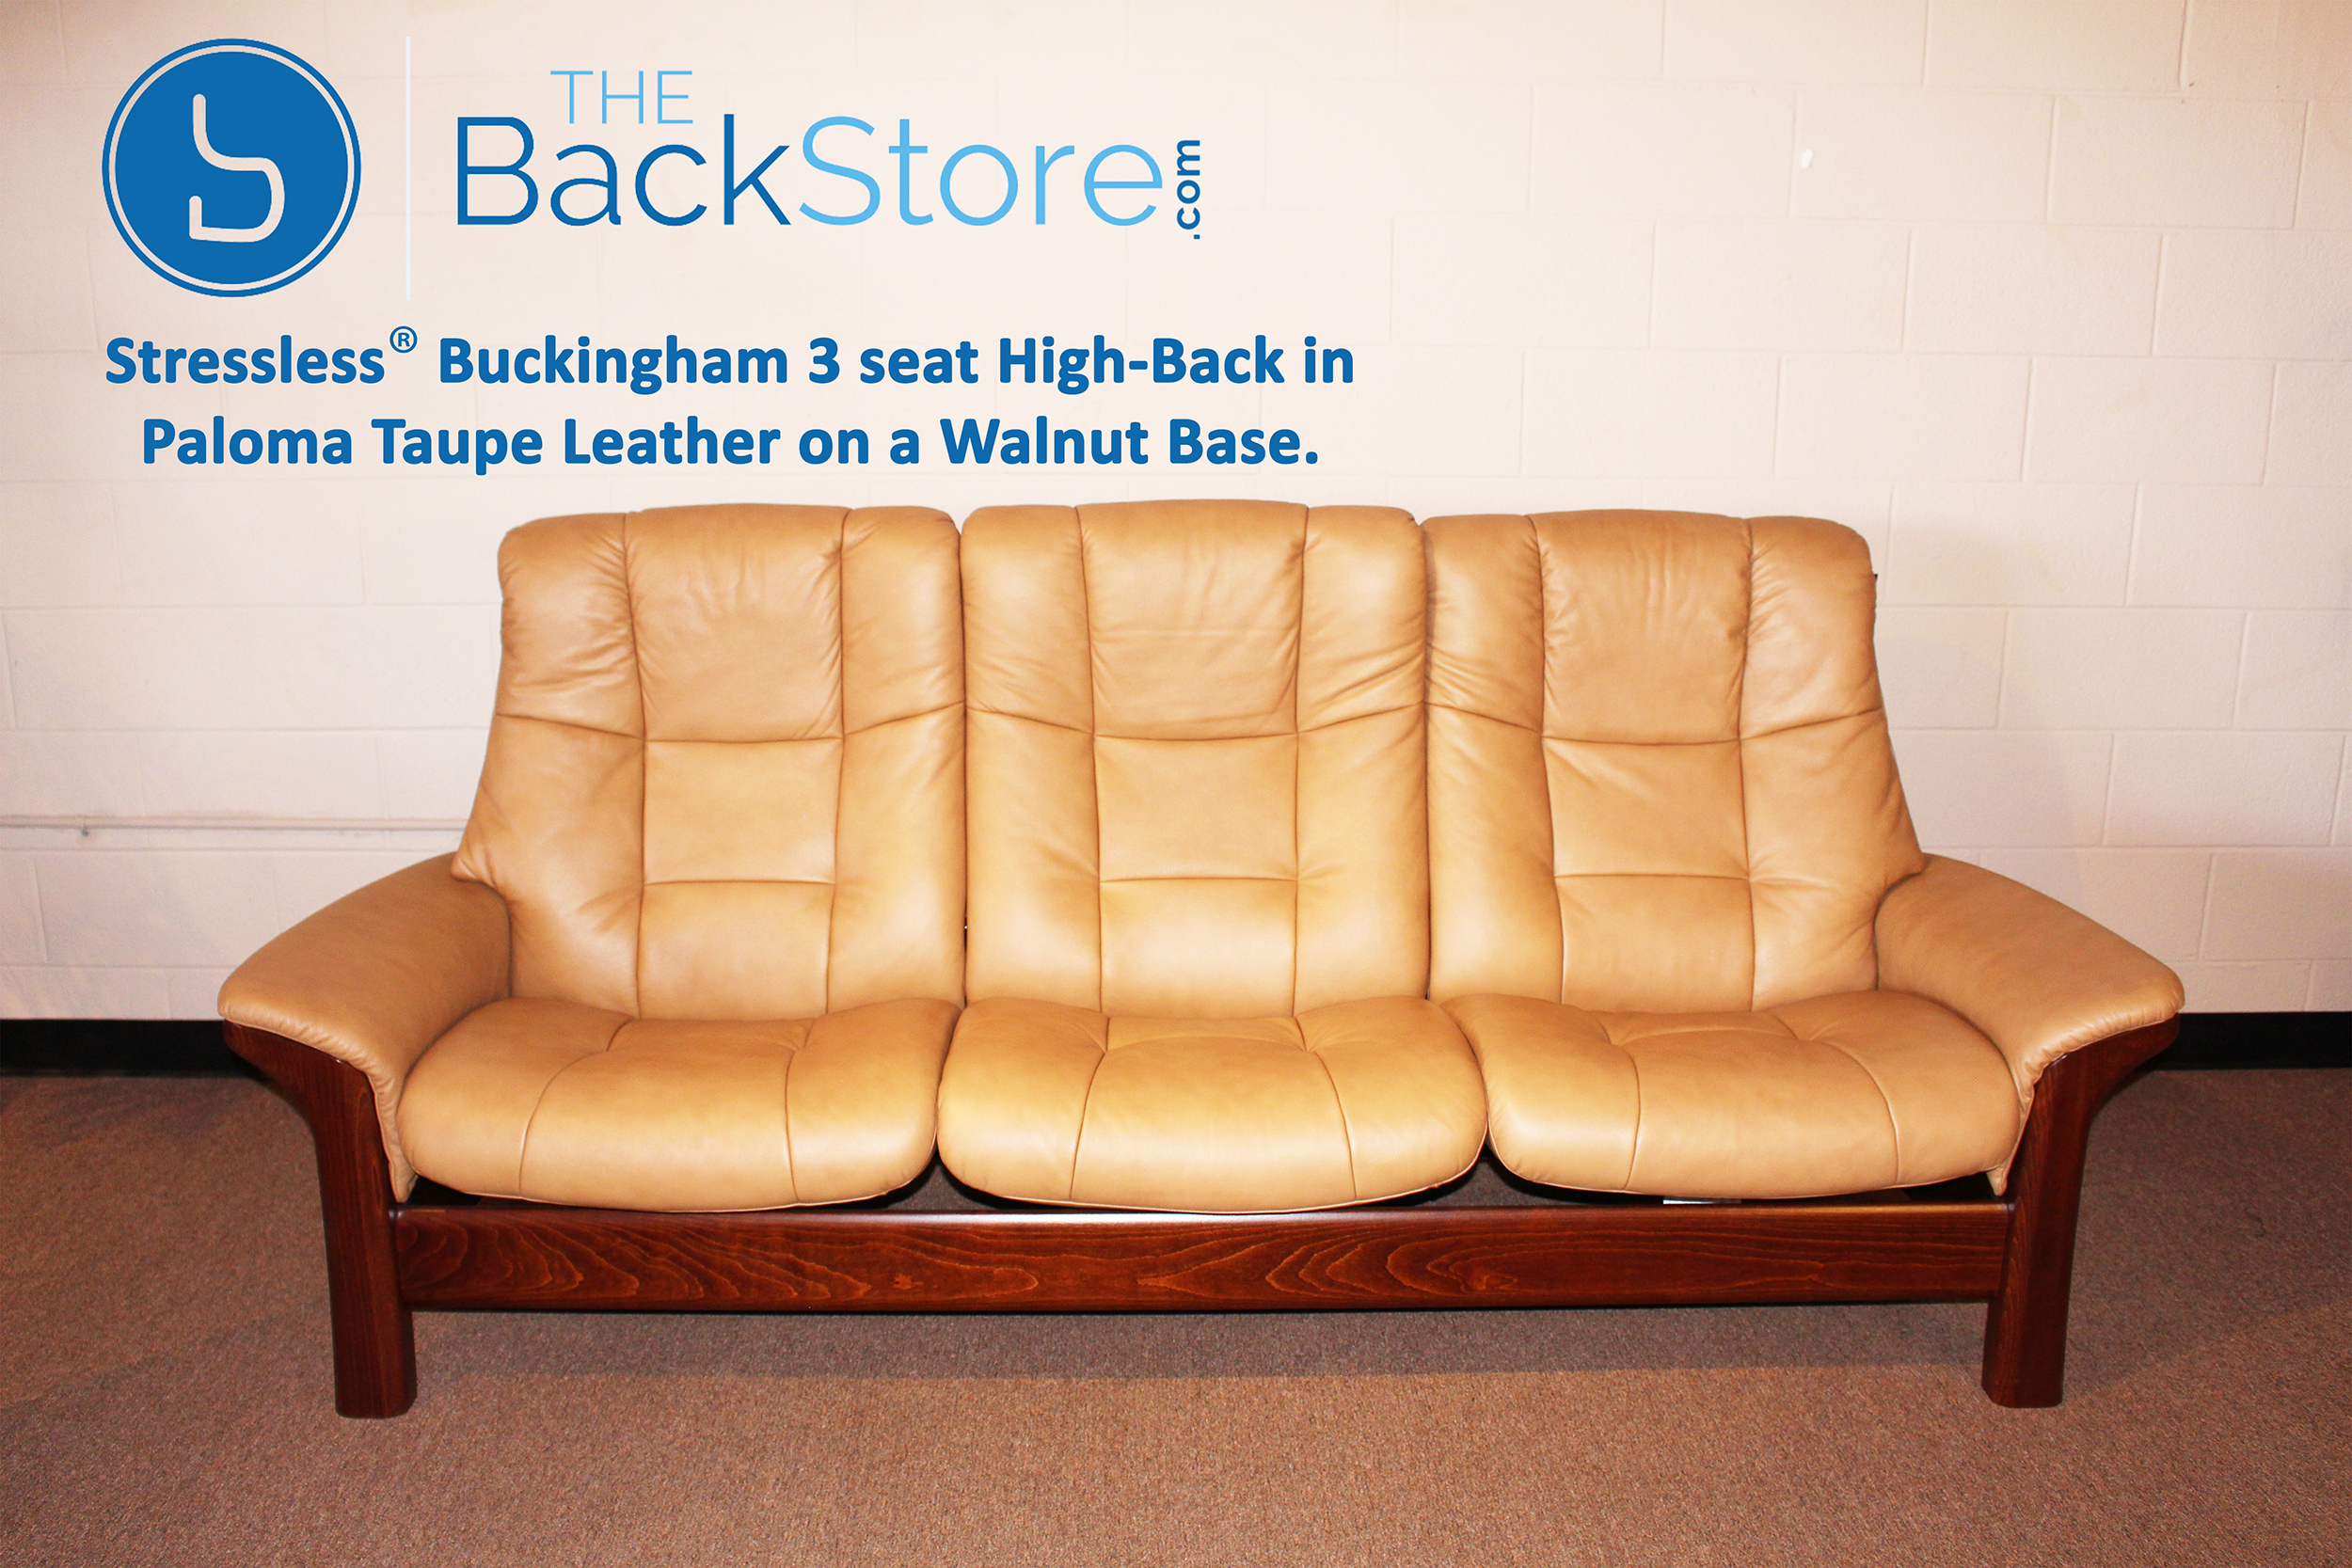 Stressless Buckingham 3 Seat High Back Sofa Paloma Taupe Color